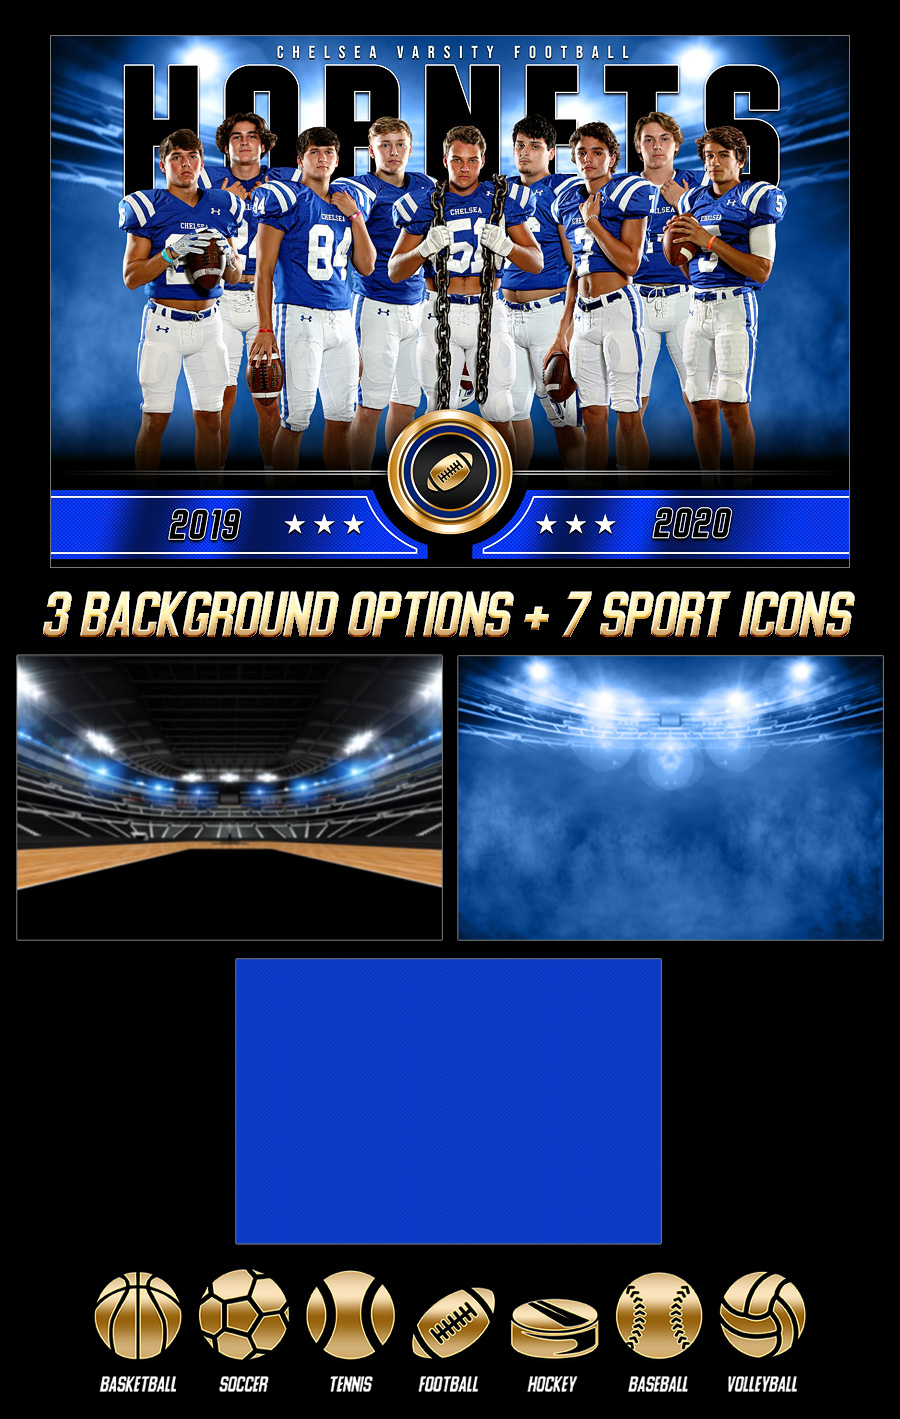 MULTI-SPORT BANNER PHOTO TEMPLATE - GOLD MEDAL - CUSTOM PHOTOSHOP LAYERED SPORTS TEMPLATE